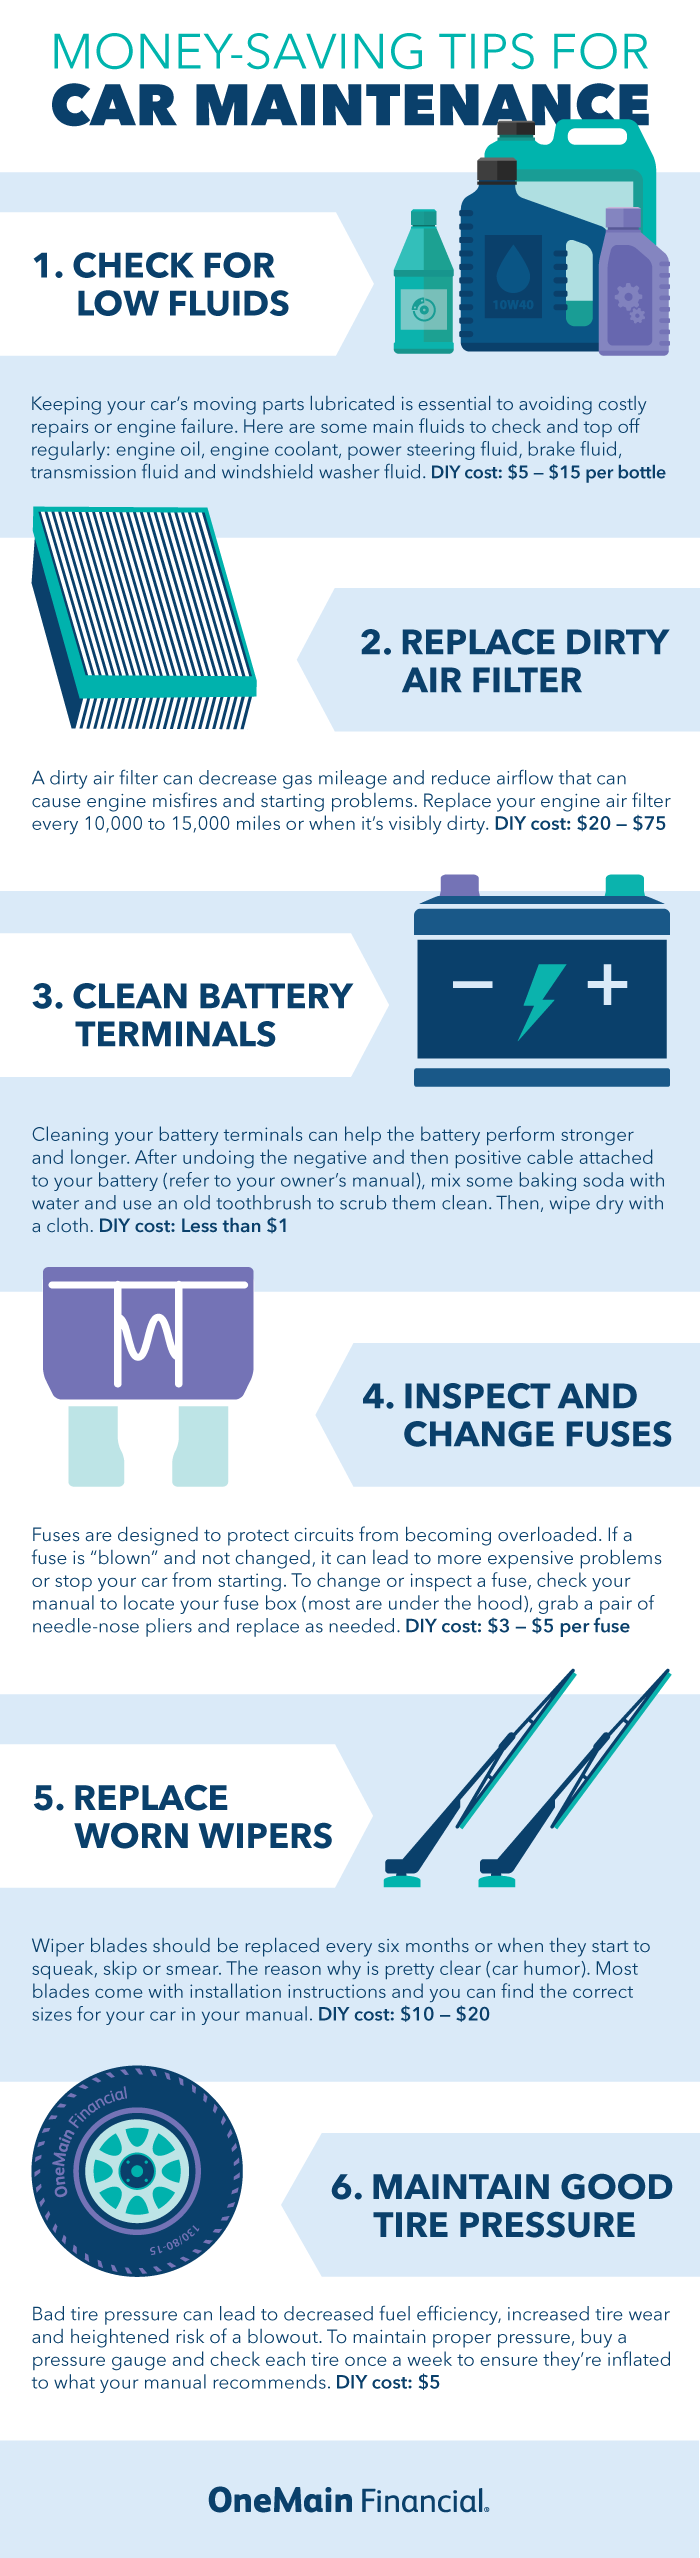 Car Maintenance Tips Infographic